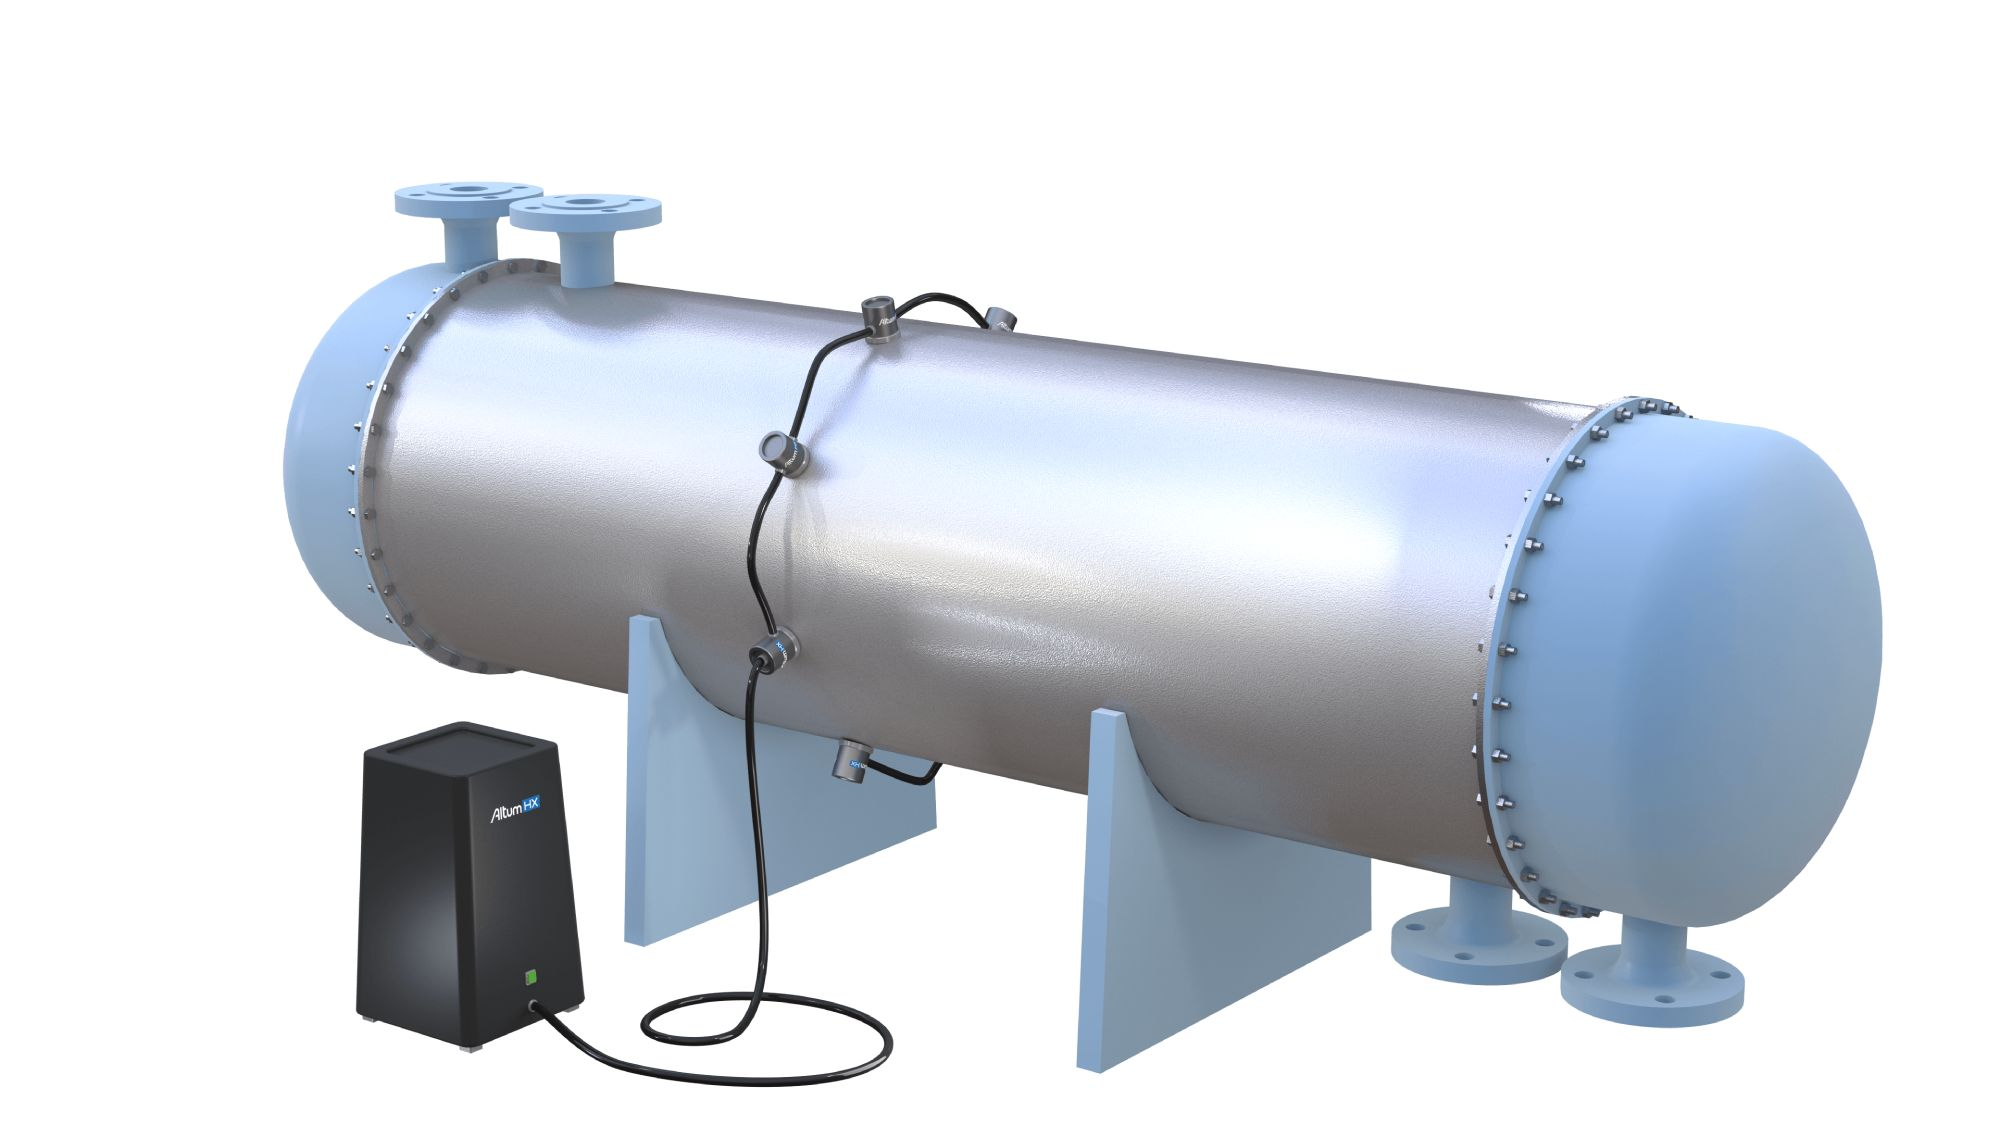 The company's power ultrasound devices are externally attached to industrial equipment and emit focused, high-power ultrasound waves where cleaning is needed. The sound waves break up and disperse fouling.